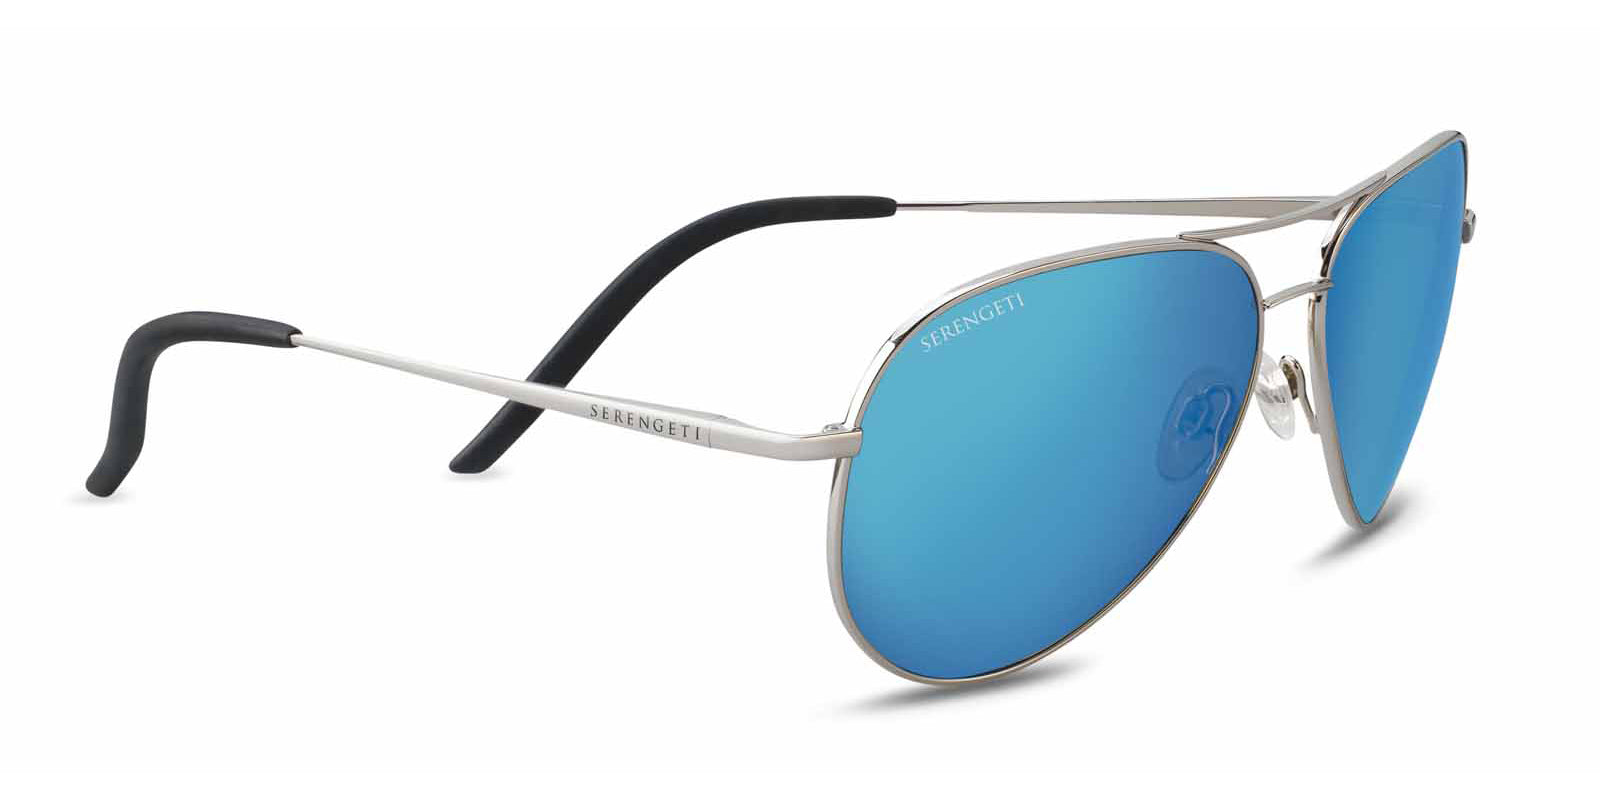 67d21a8ca2b1 Serengeti Carrara 8547 - Shiny Silver, Polarized 555nm Blue Lens - Flight  Sunglasses